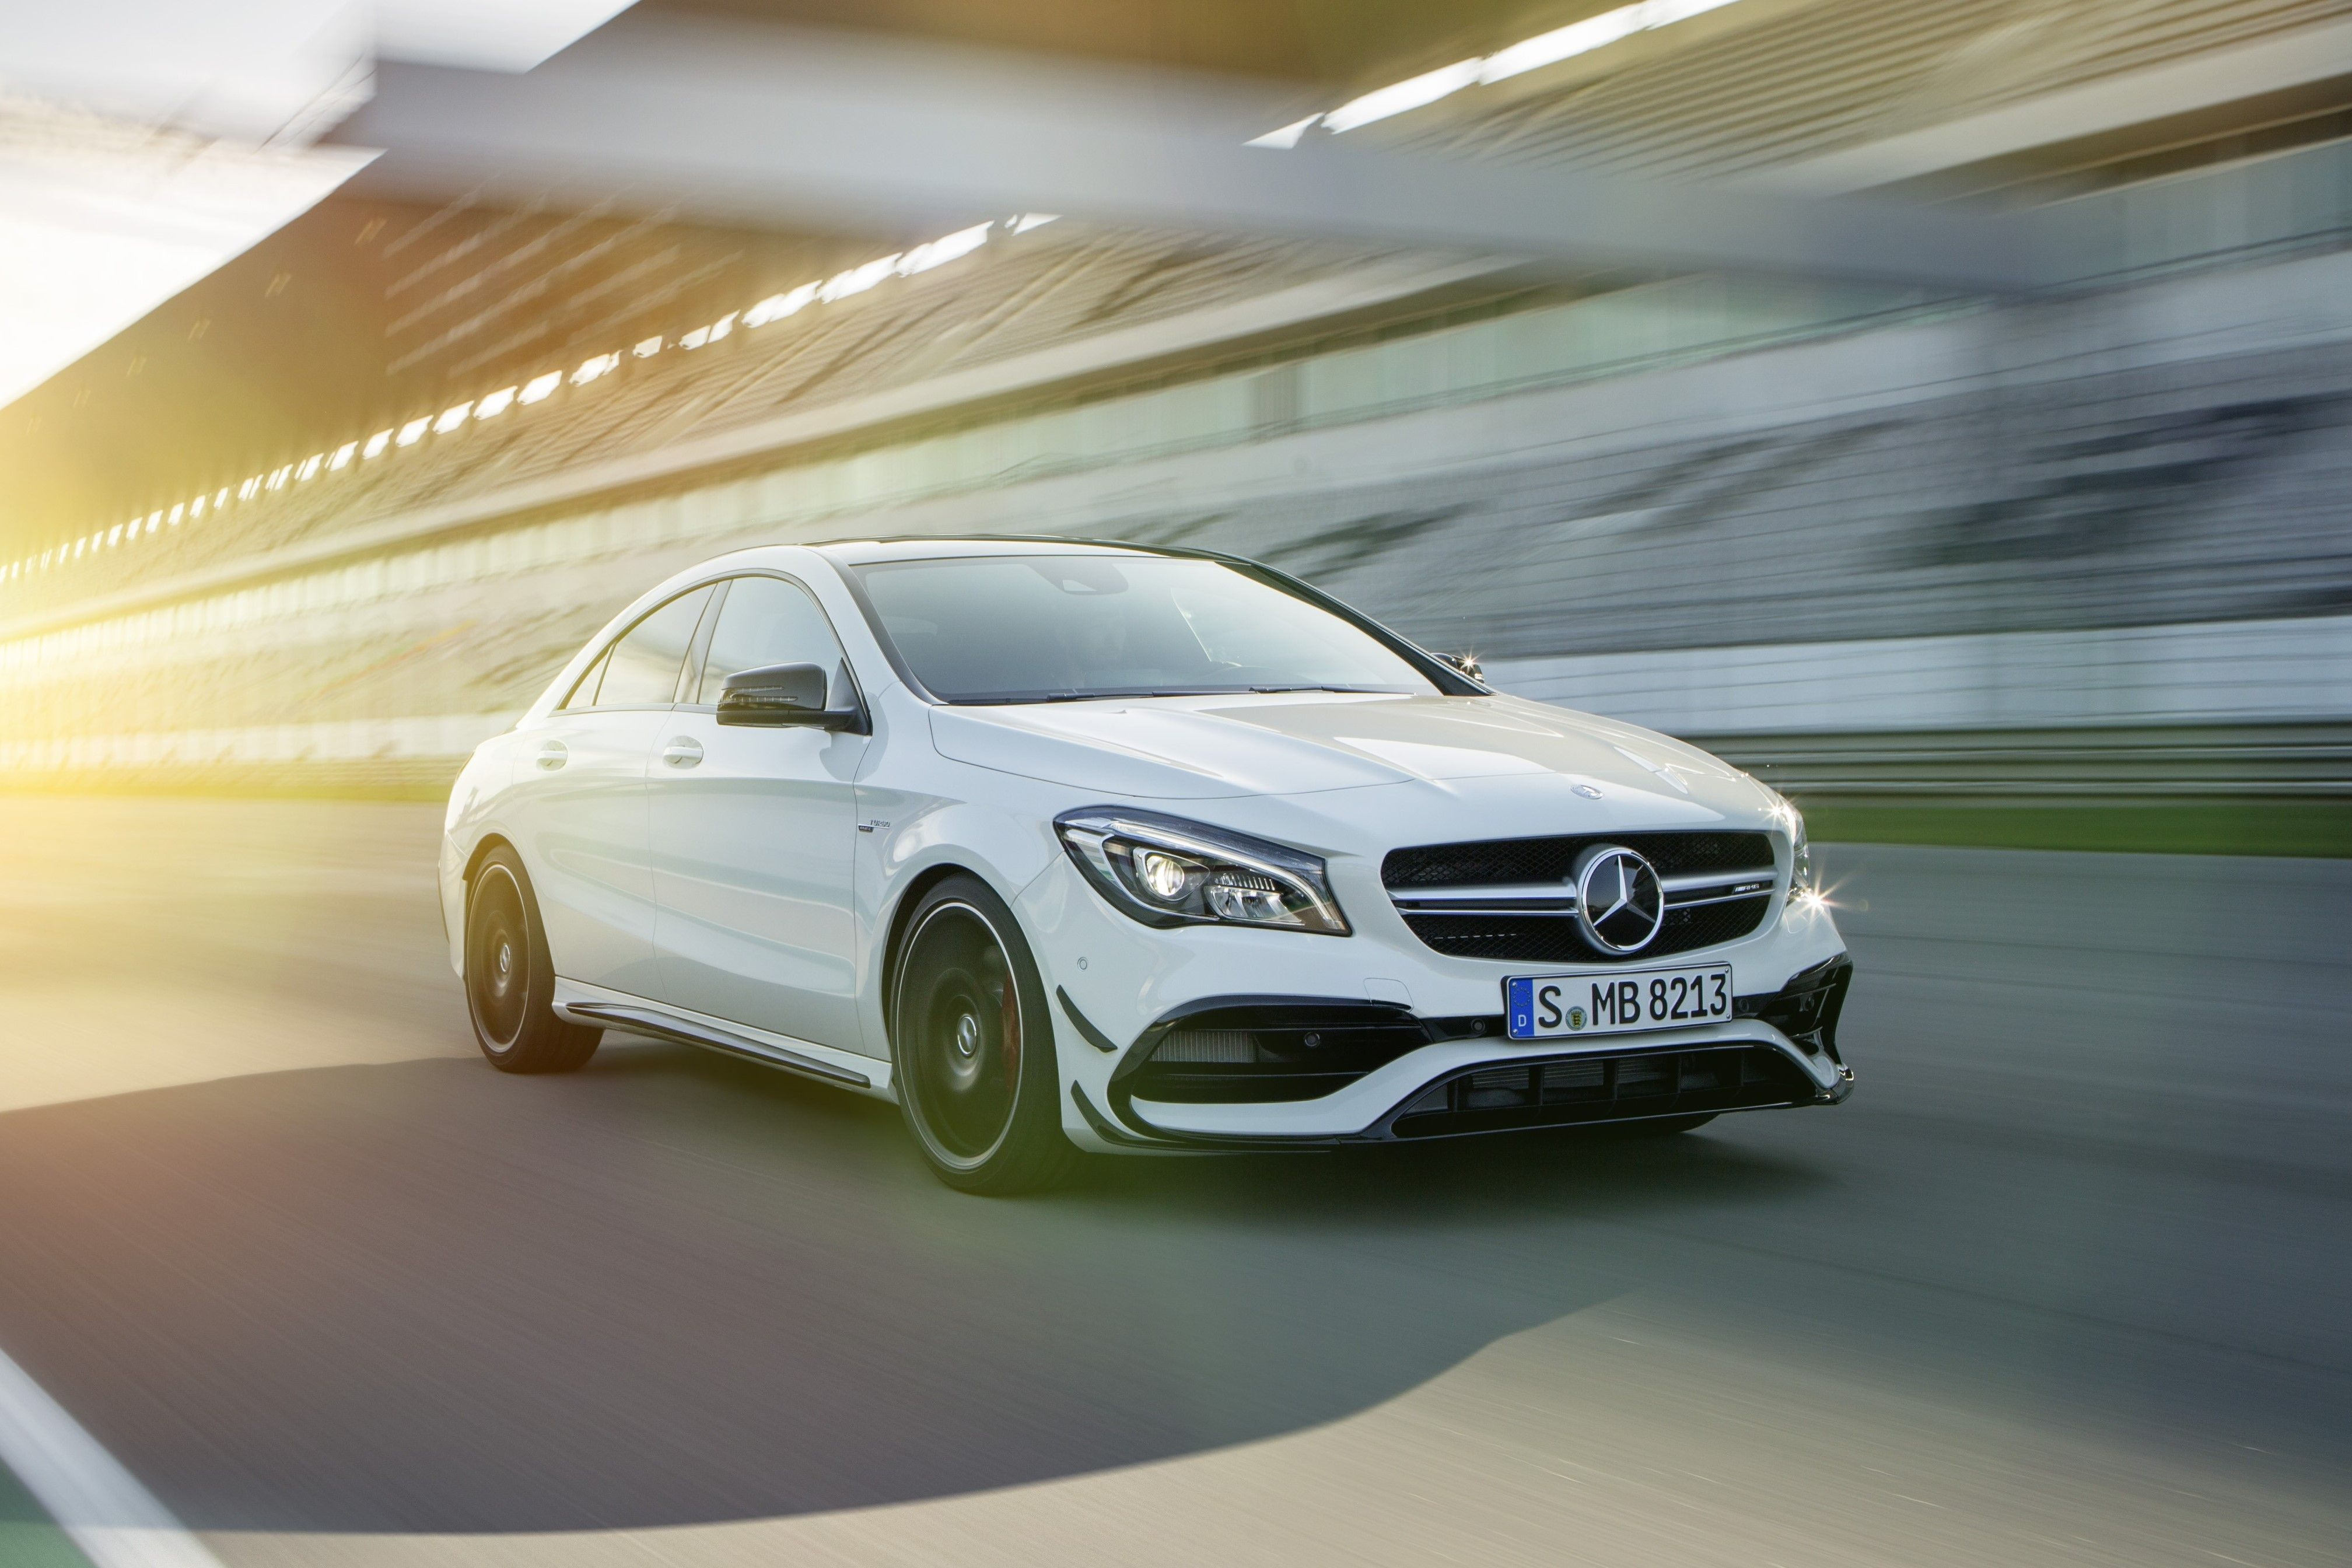 New Mercedes Amg Cla 45 4matic Coupe And Shooting Brake With